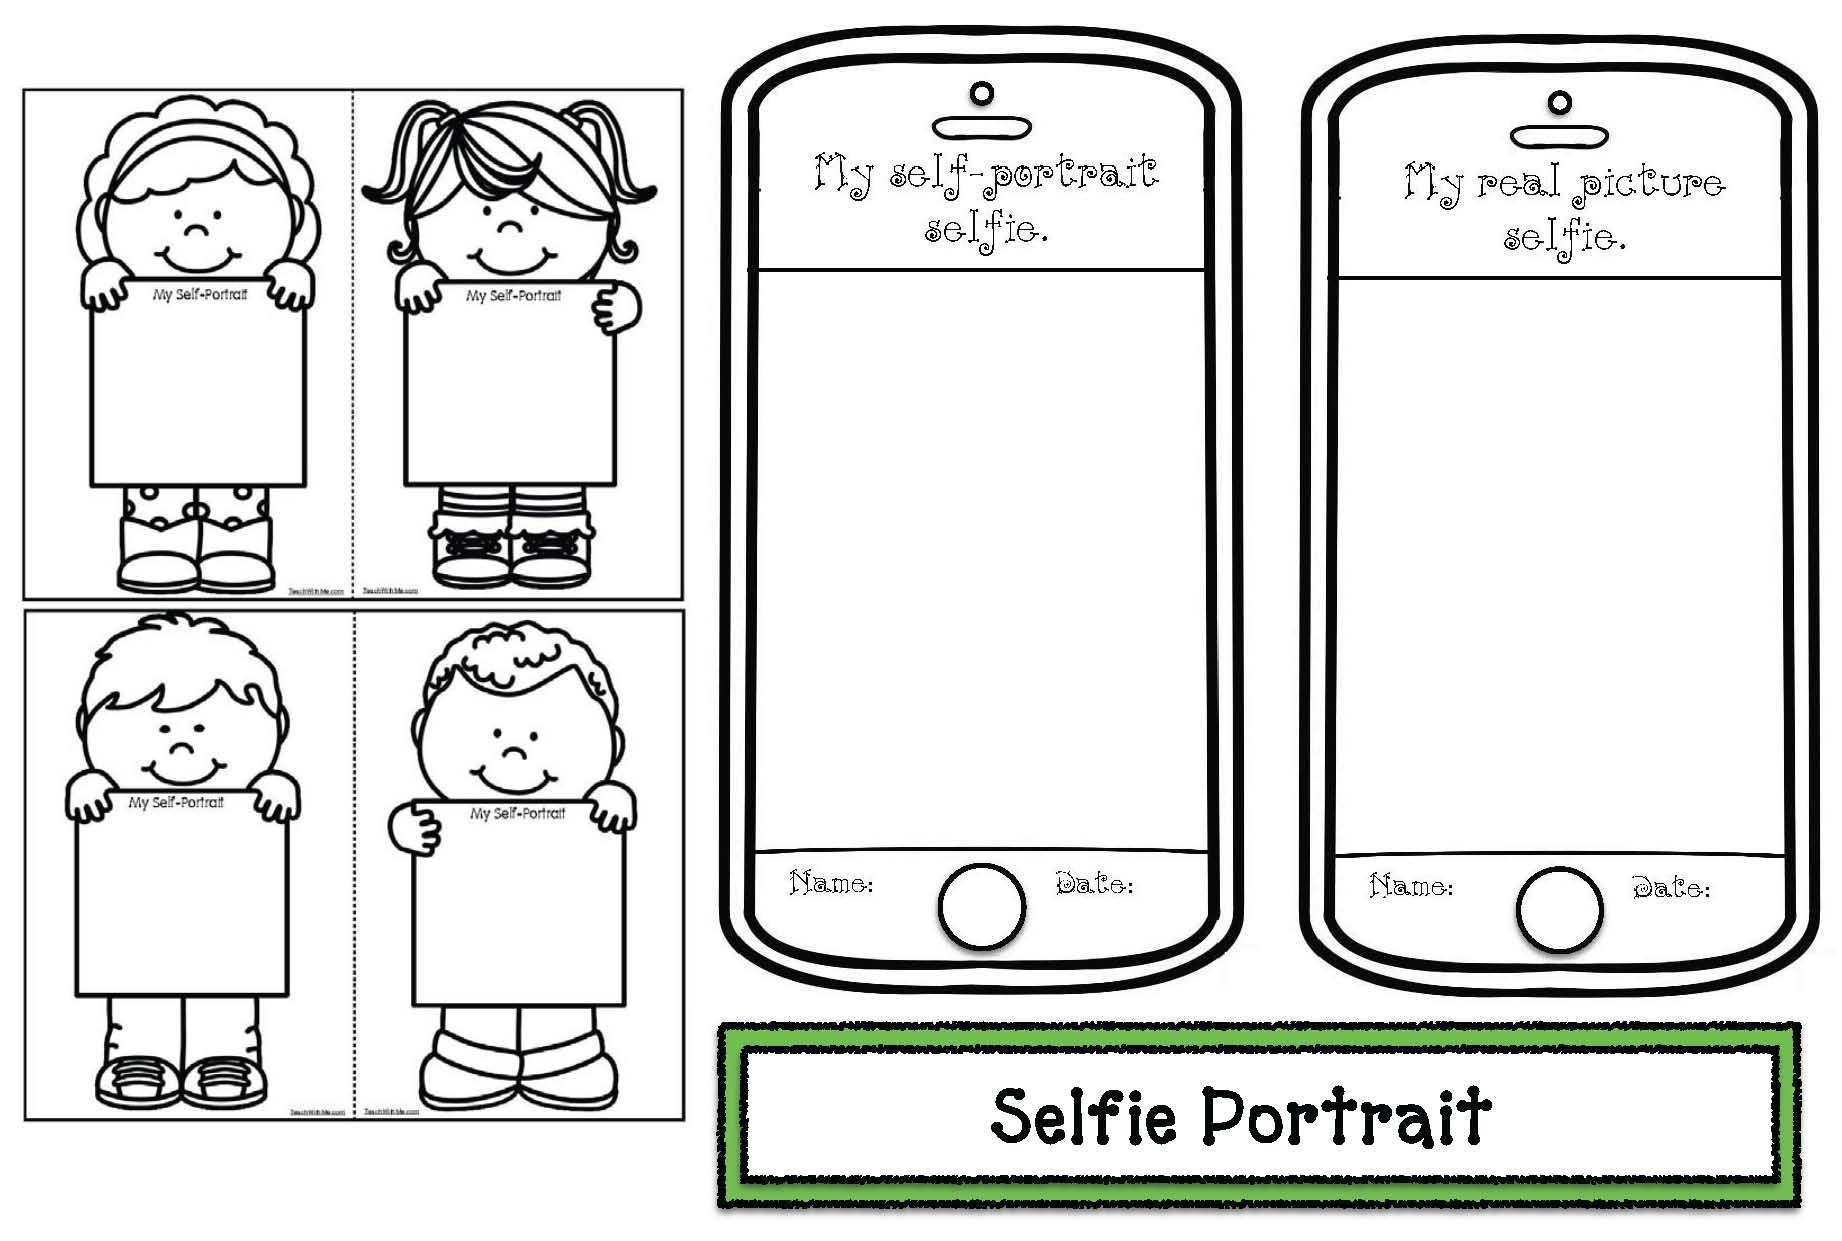 selfie self portrait writing prompt craft